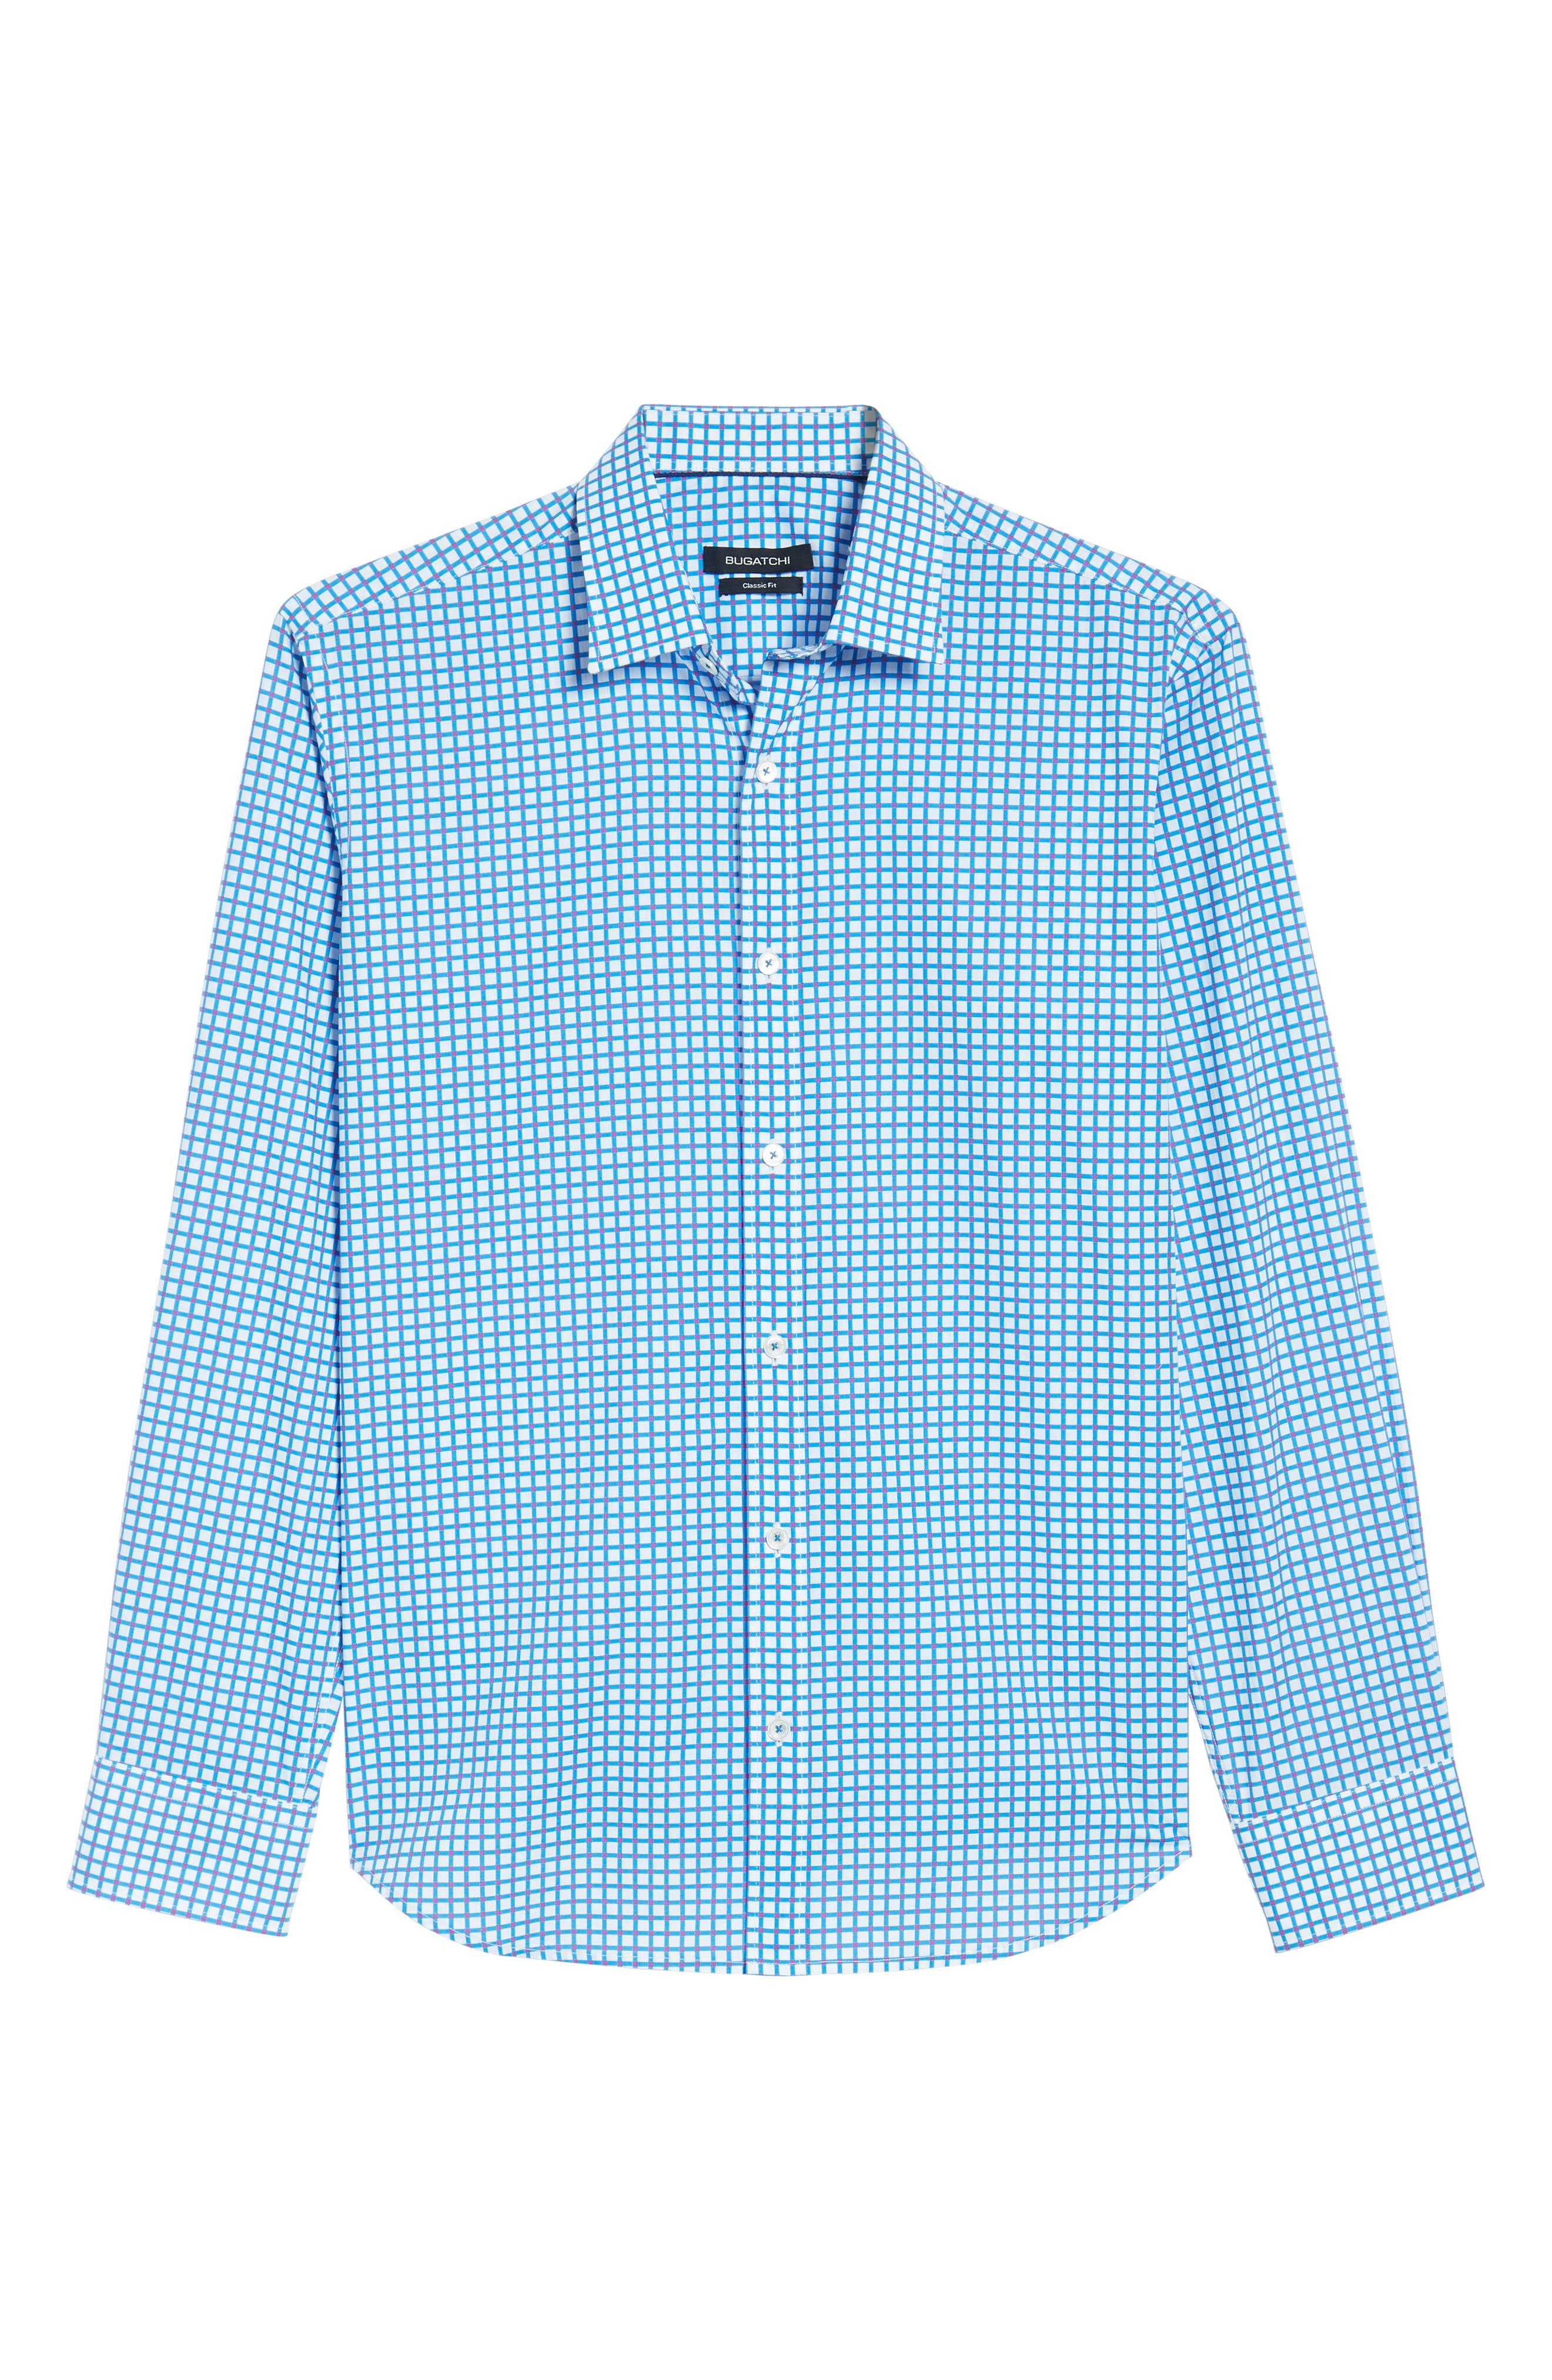 Classic Fit Dot Check Sport Shirt,                             Alternate thumbnail 6, color,                             Turquoise